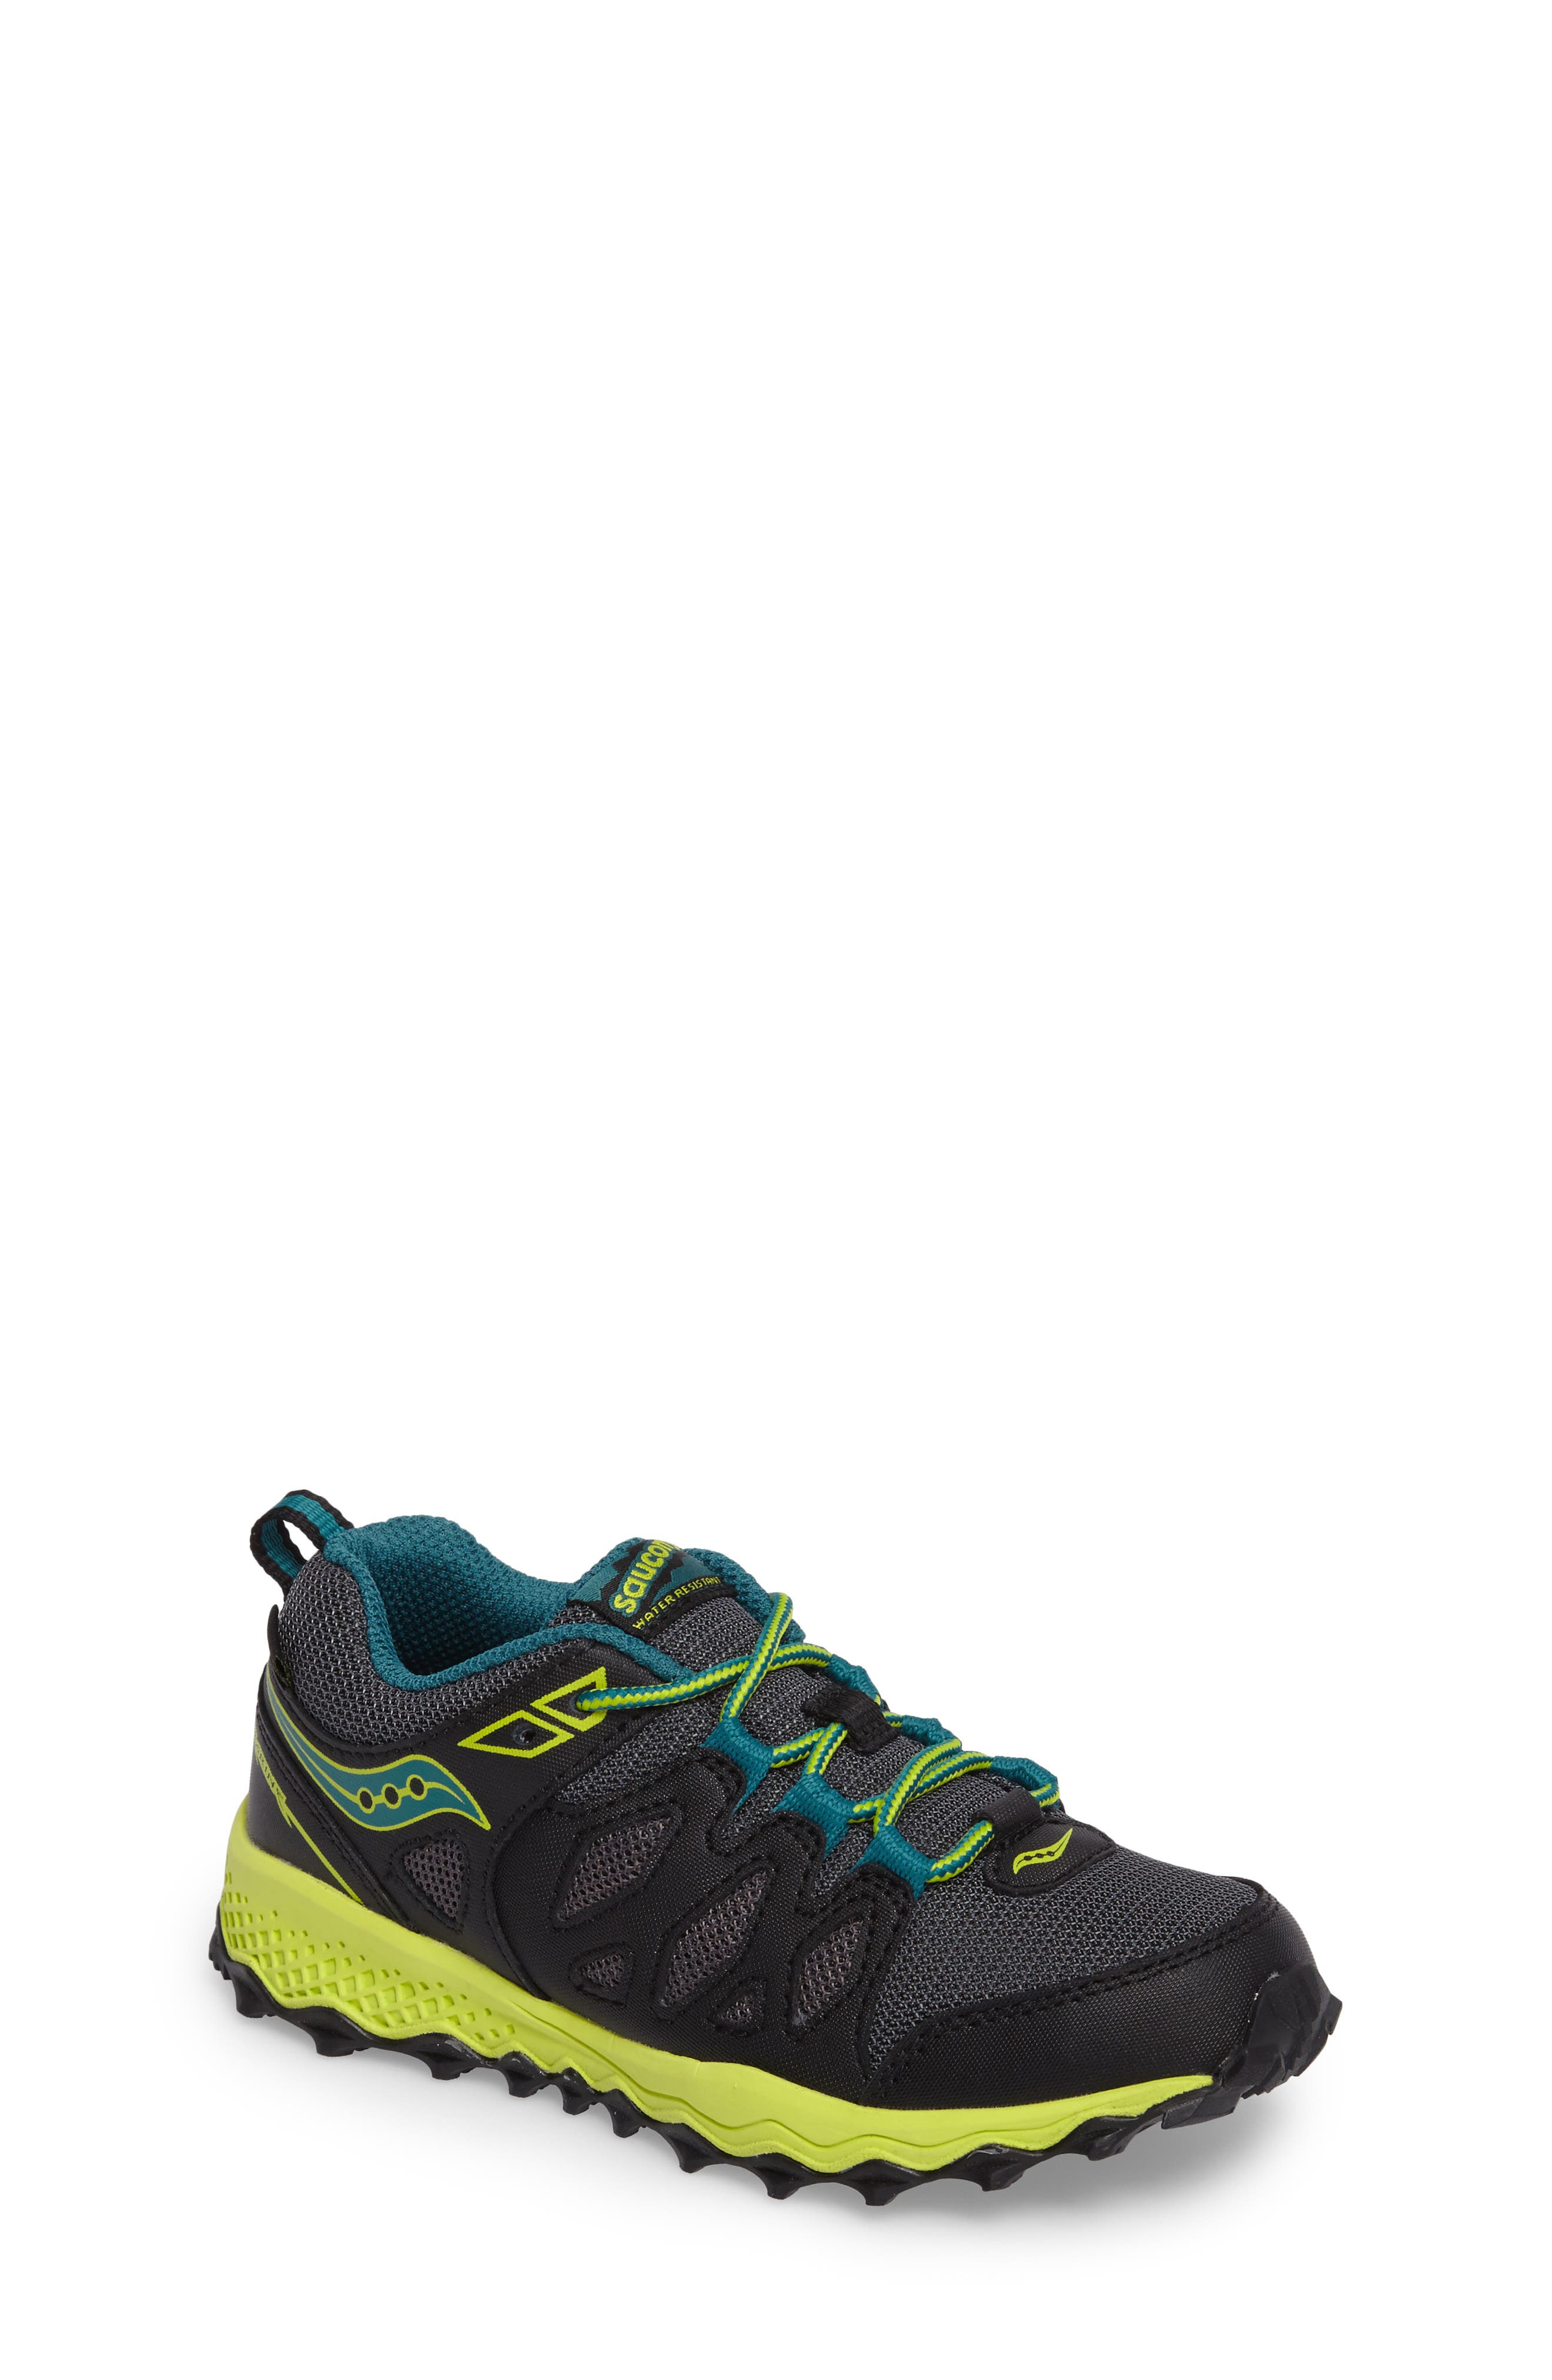 Peregrine Shield Water-Resistant Sneaker,                             Main thumbnail 1, color,                             Black/ Lime/ Green